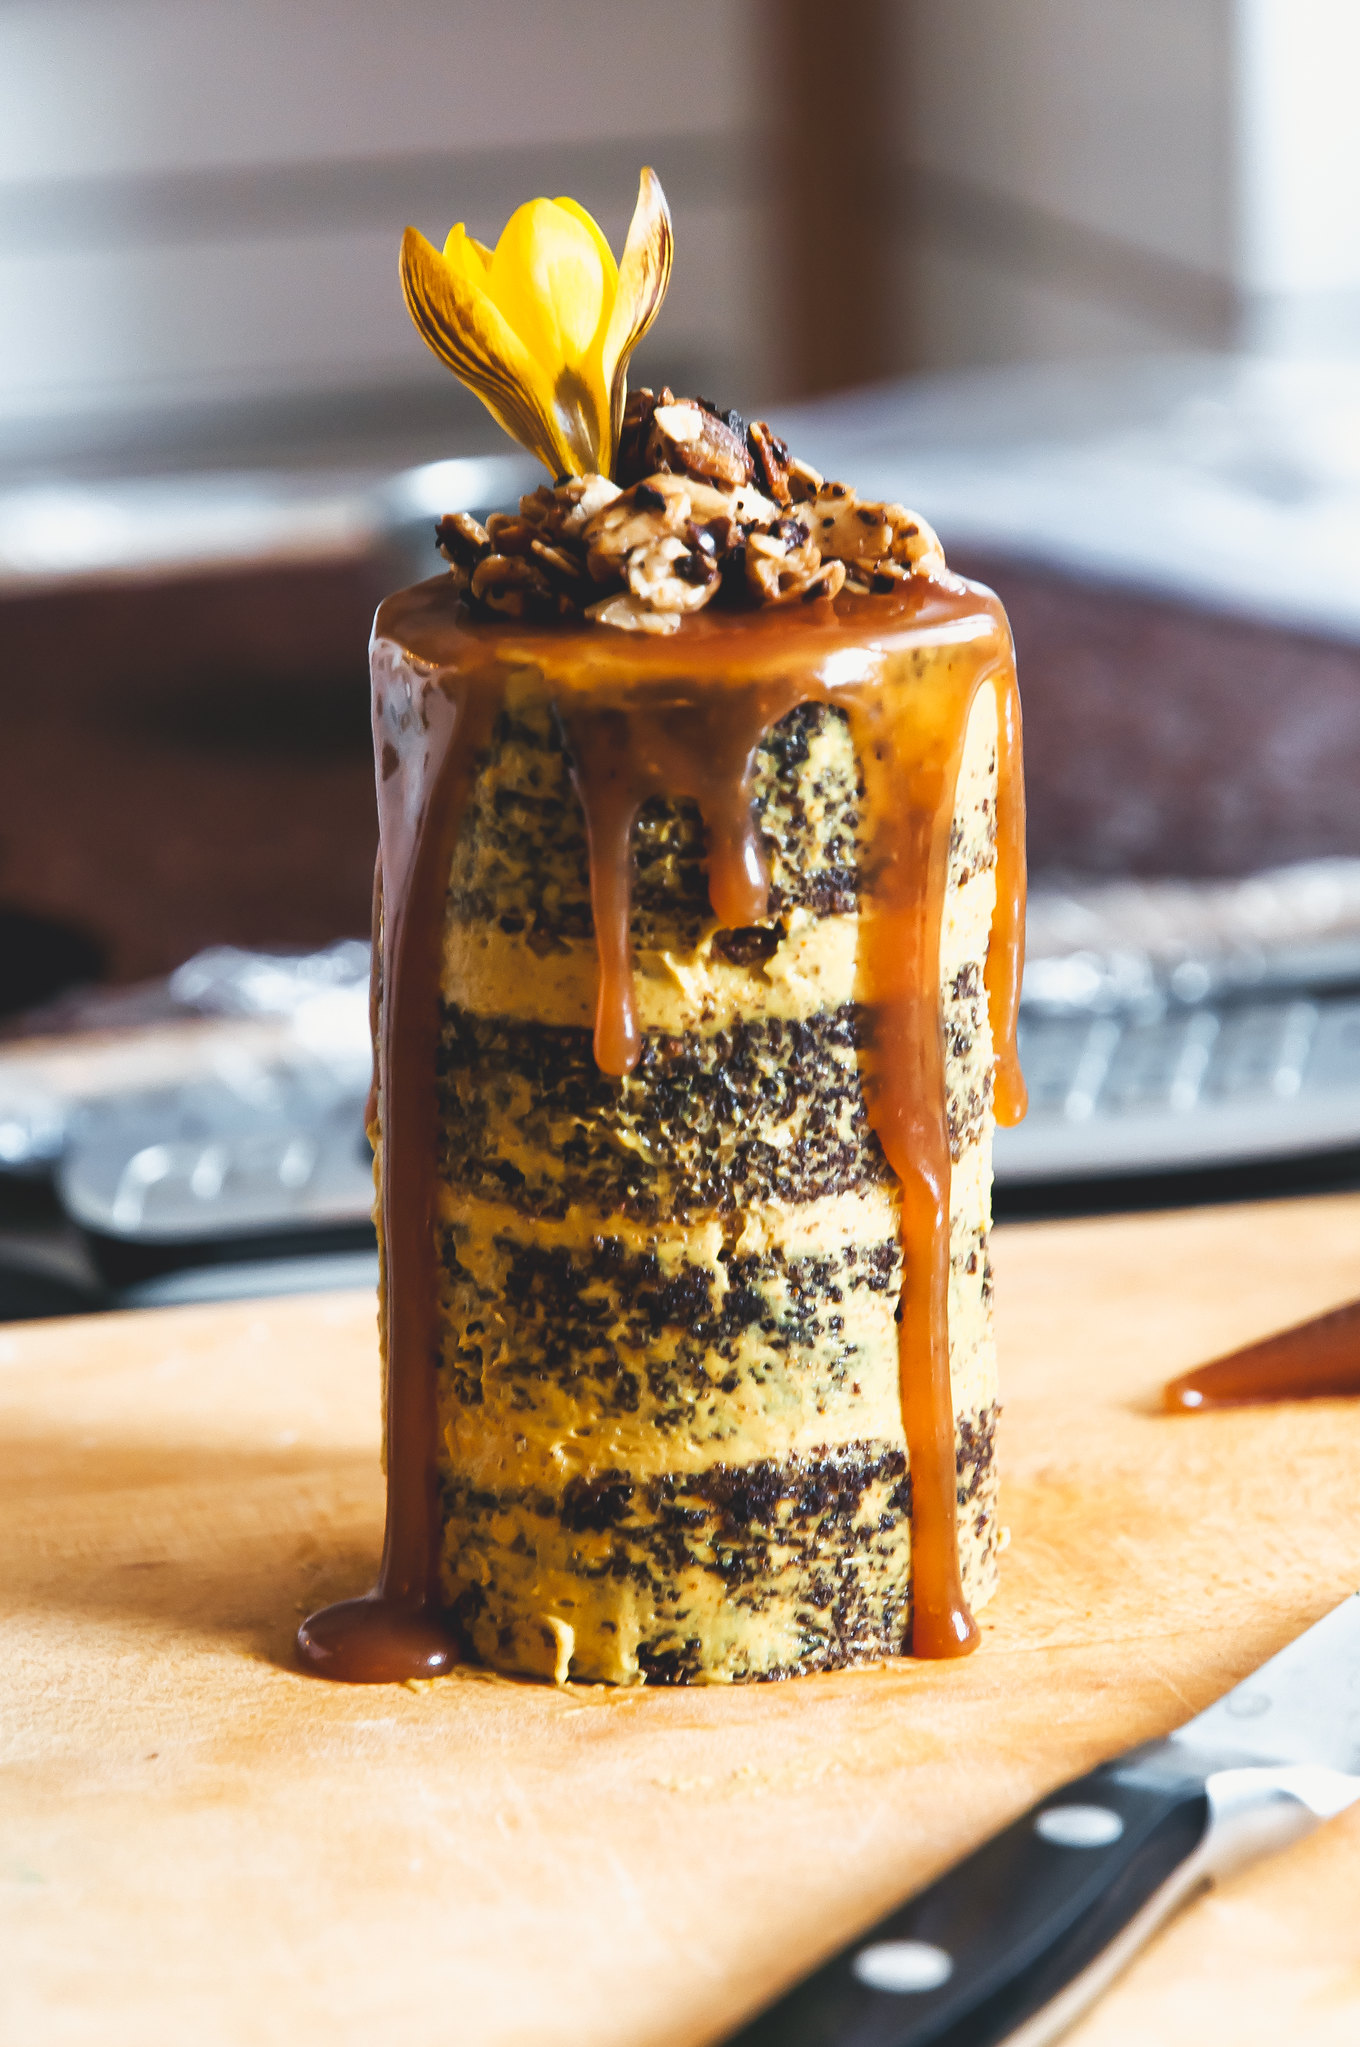 Chocolate Carrot Cake with Turmeric Butterscotch Buttercream, Salted Caramel and Oat Crumble